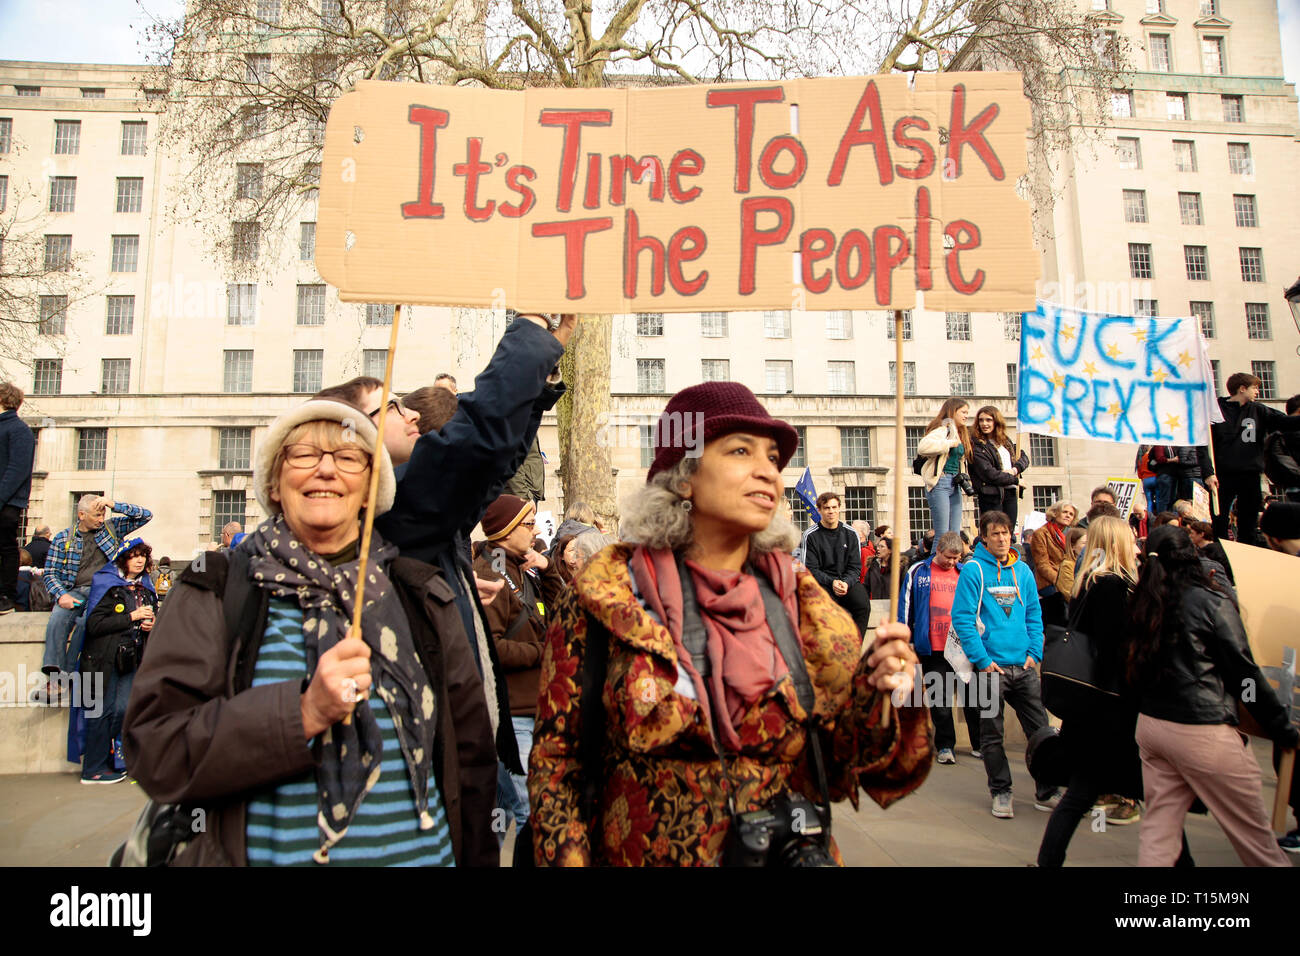 Hundreds of thousands of people from all corners of the UK and abroad rallied in Mayfair and marched to Parliament Square and WhiteHall.The protest against Brexit are calling for a Peoples Vote on the final deal. The march despite being said to be over a million people, was good natured and good humoroed. - Stock Image